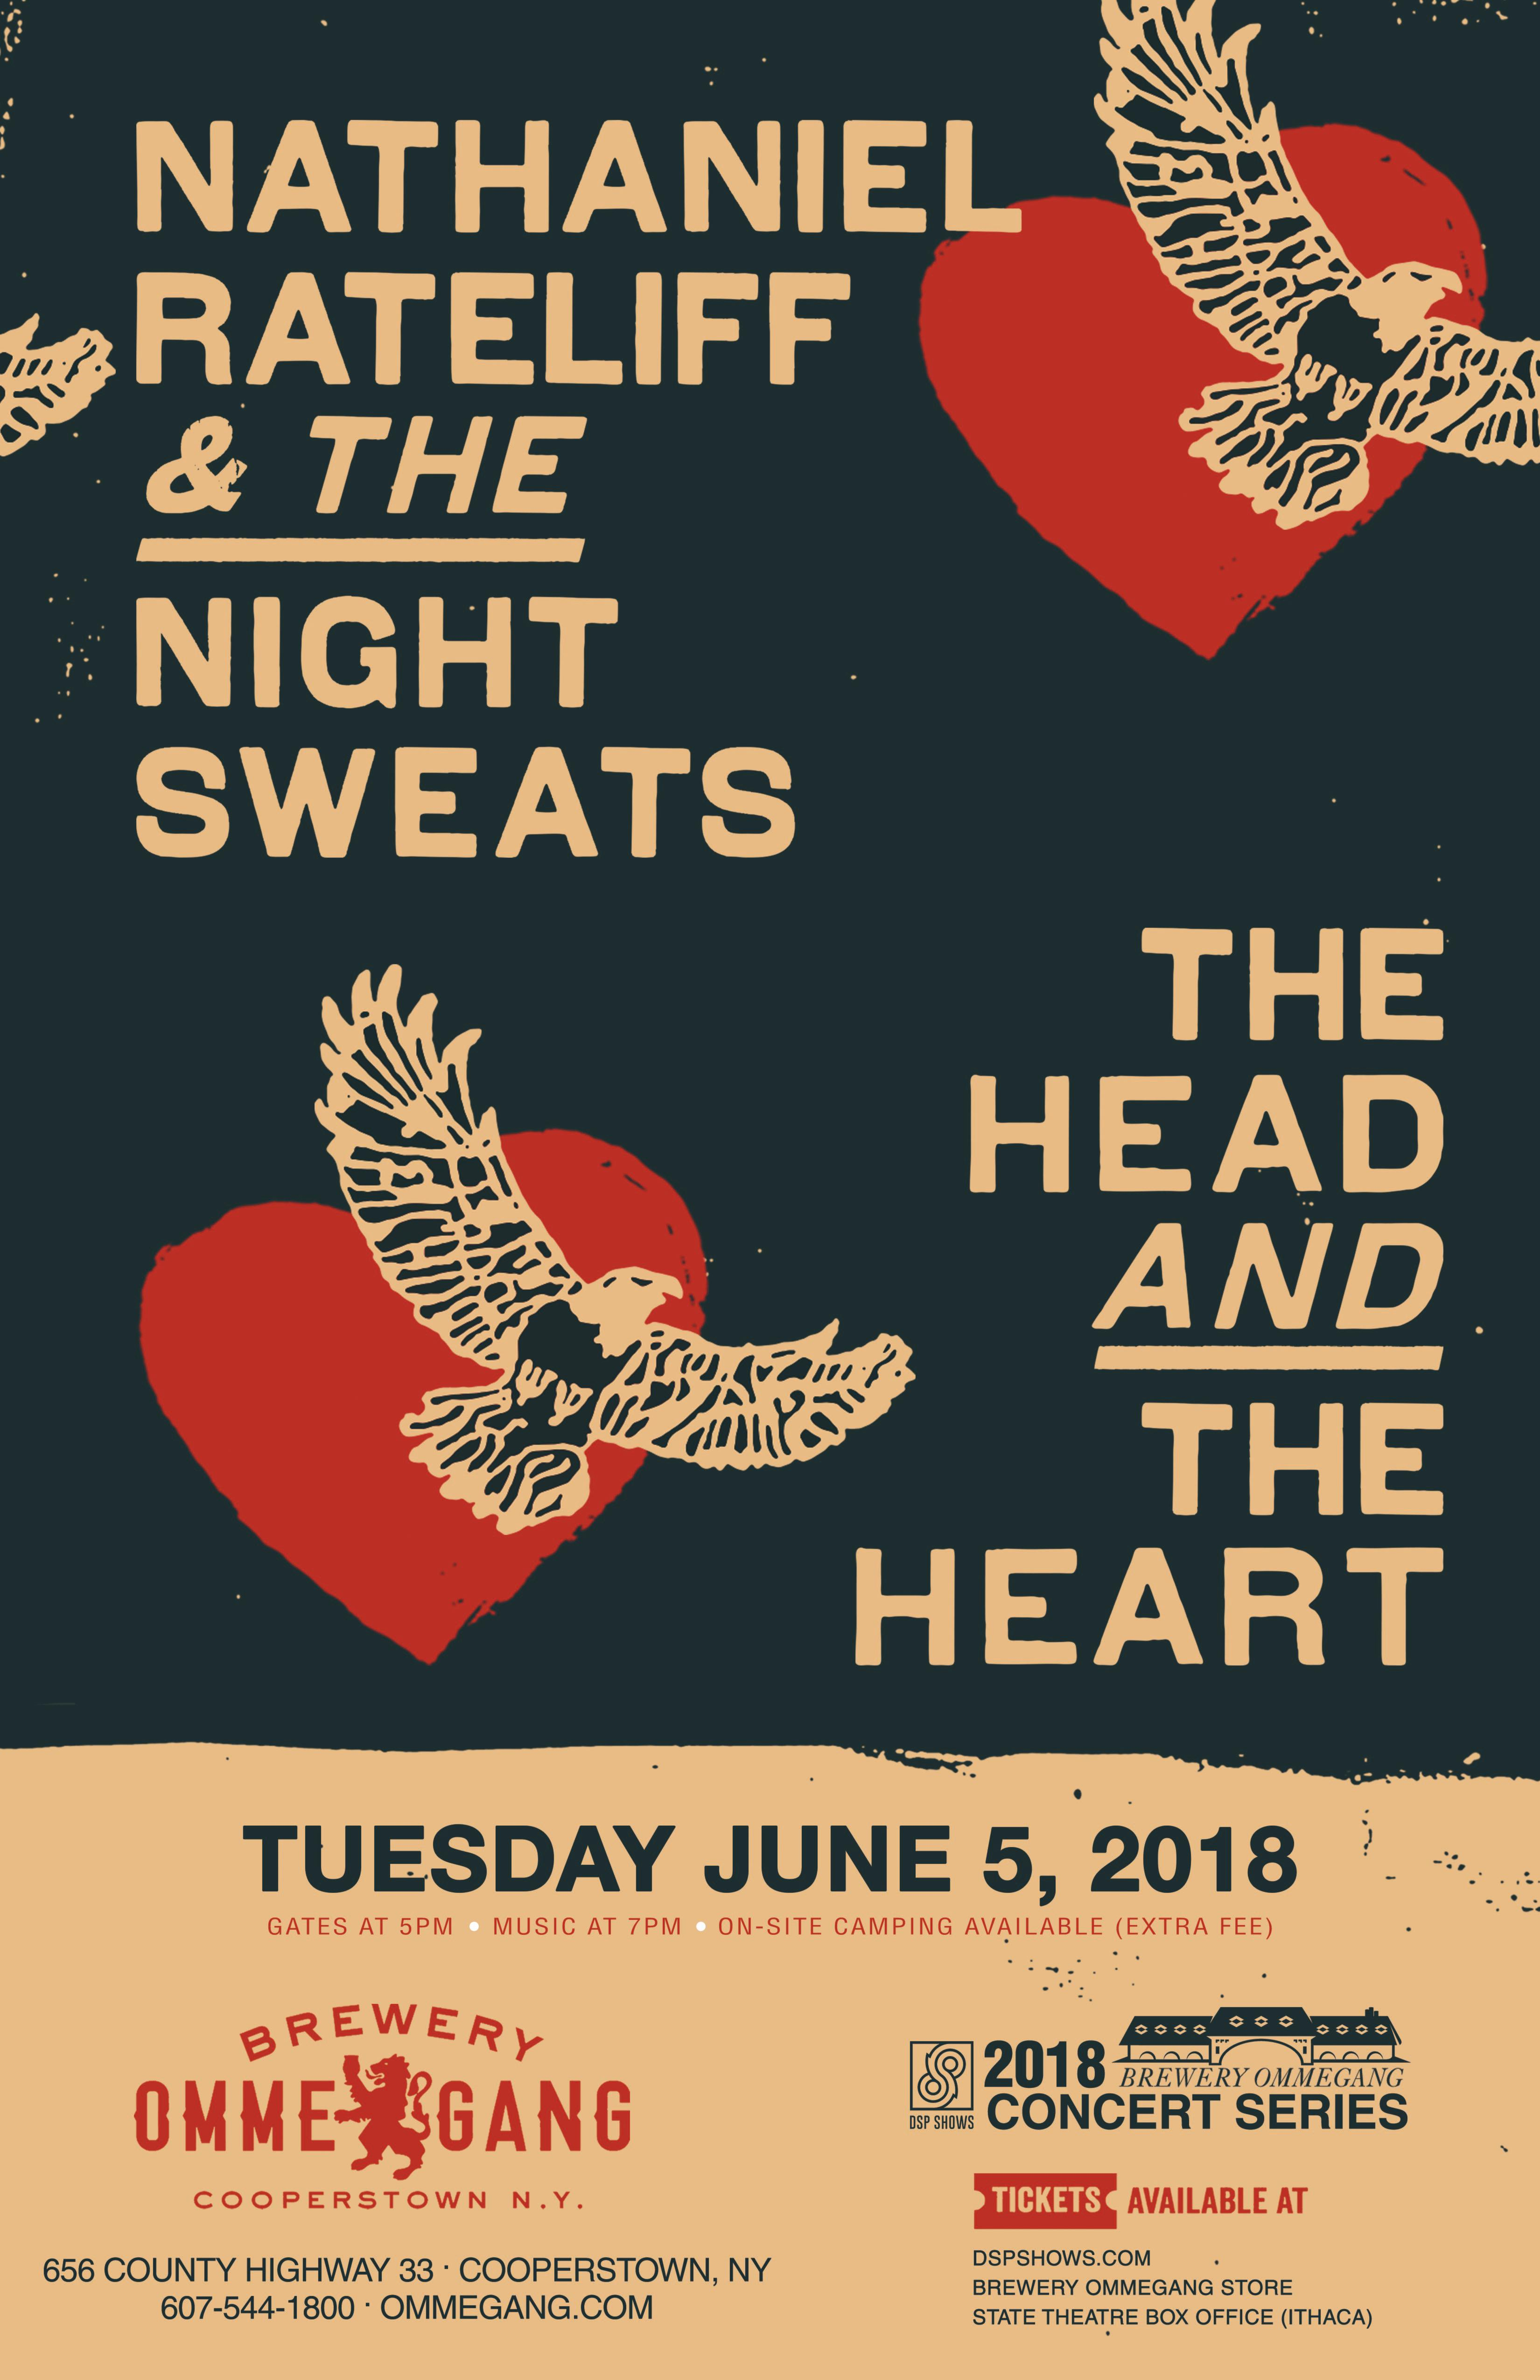 SCS 2018: Nathaniel Rateliff & The Night Sweats + The Head and The Heart on June 5